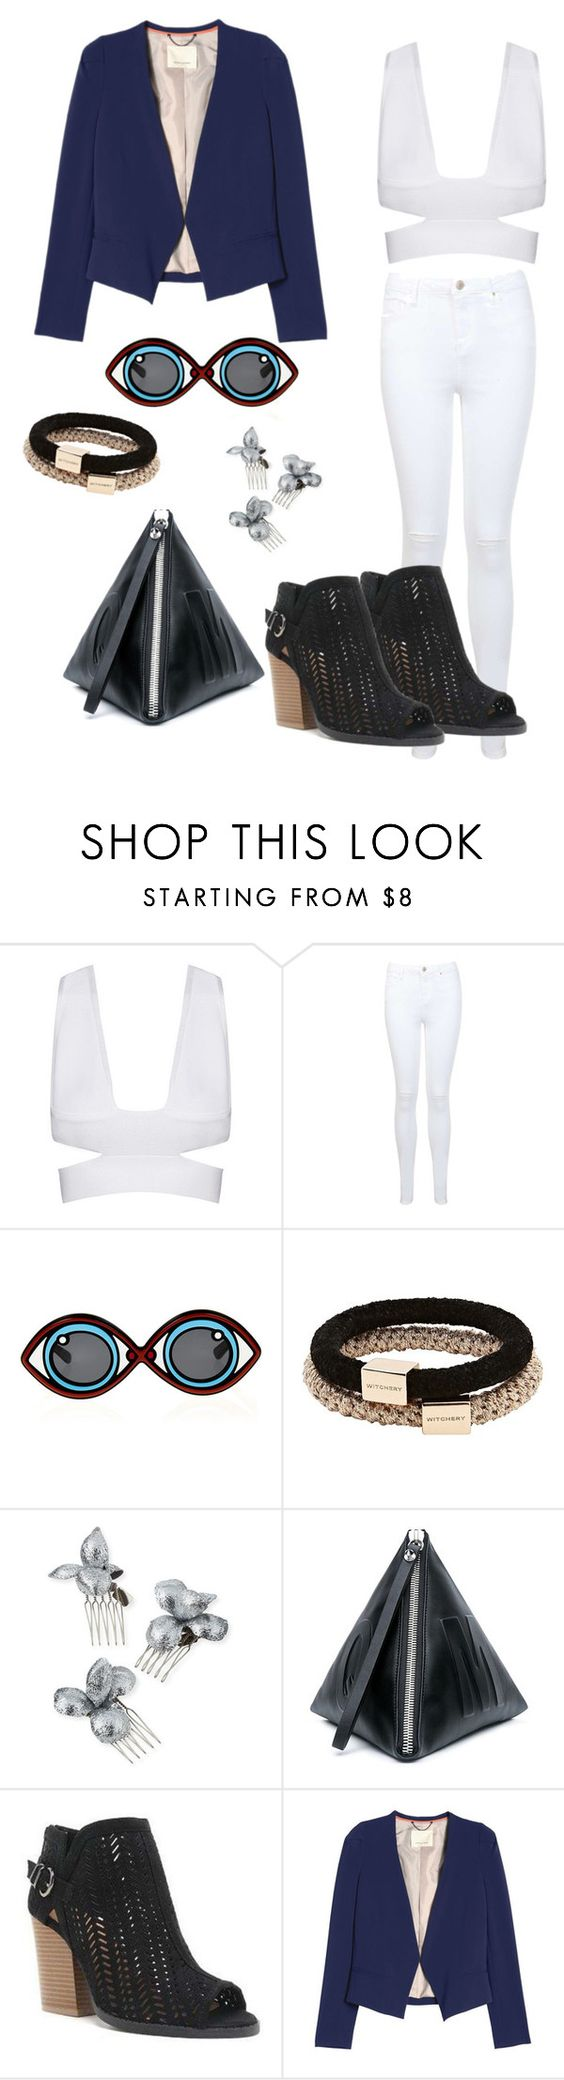 """""""Sem título #2244"""" by mariana-mester-vianna ❤ liked on Polyvore featuring Miss Selfridge, Linda Farrow, Witchery, Gigi Burris Millinery, McQ by Alexander McQueen and Qupid"""